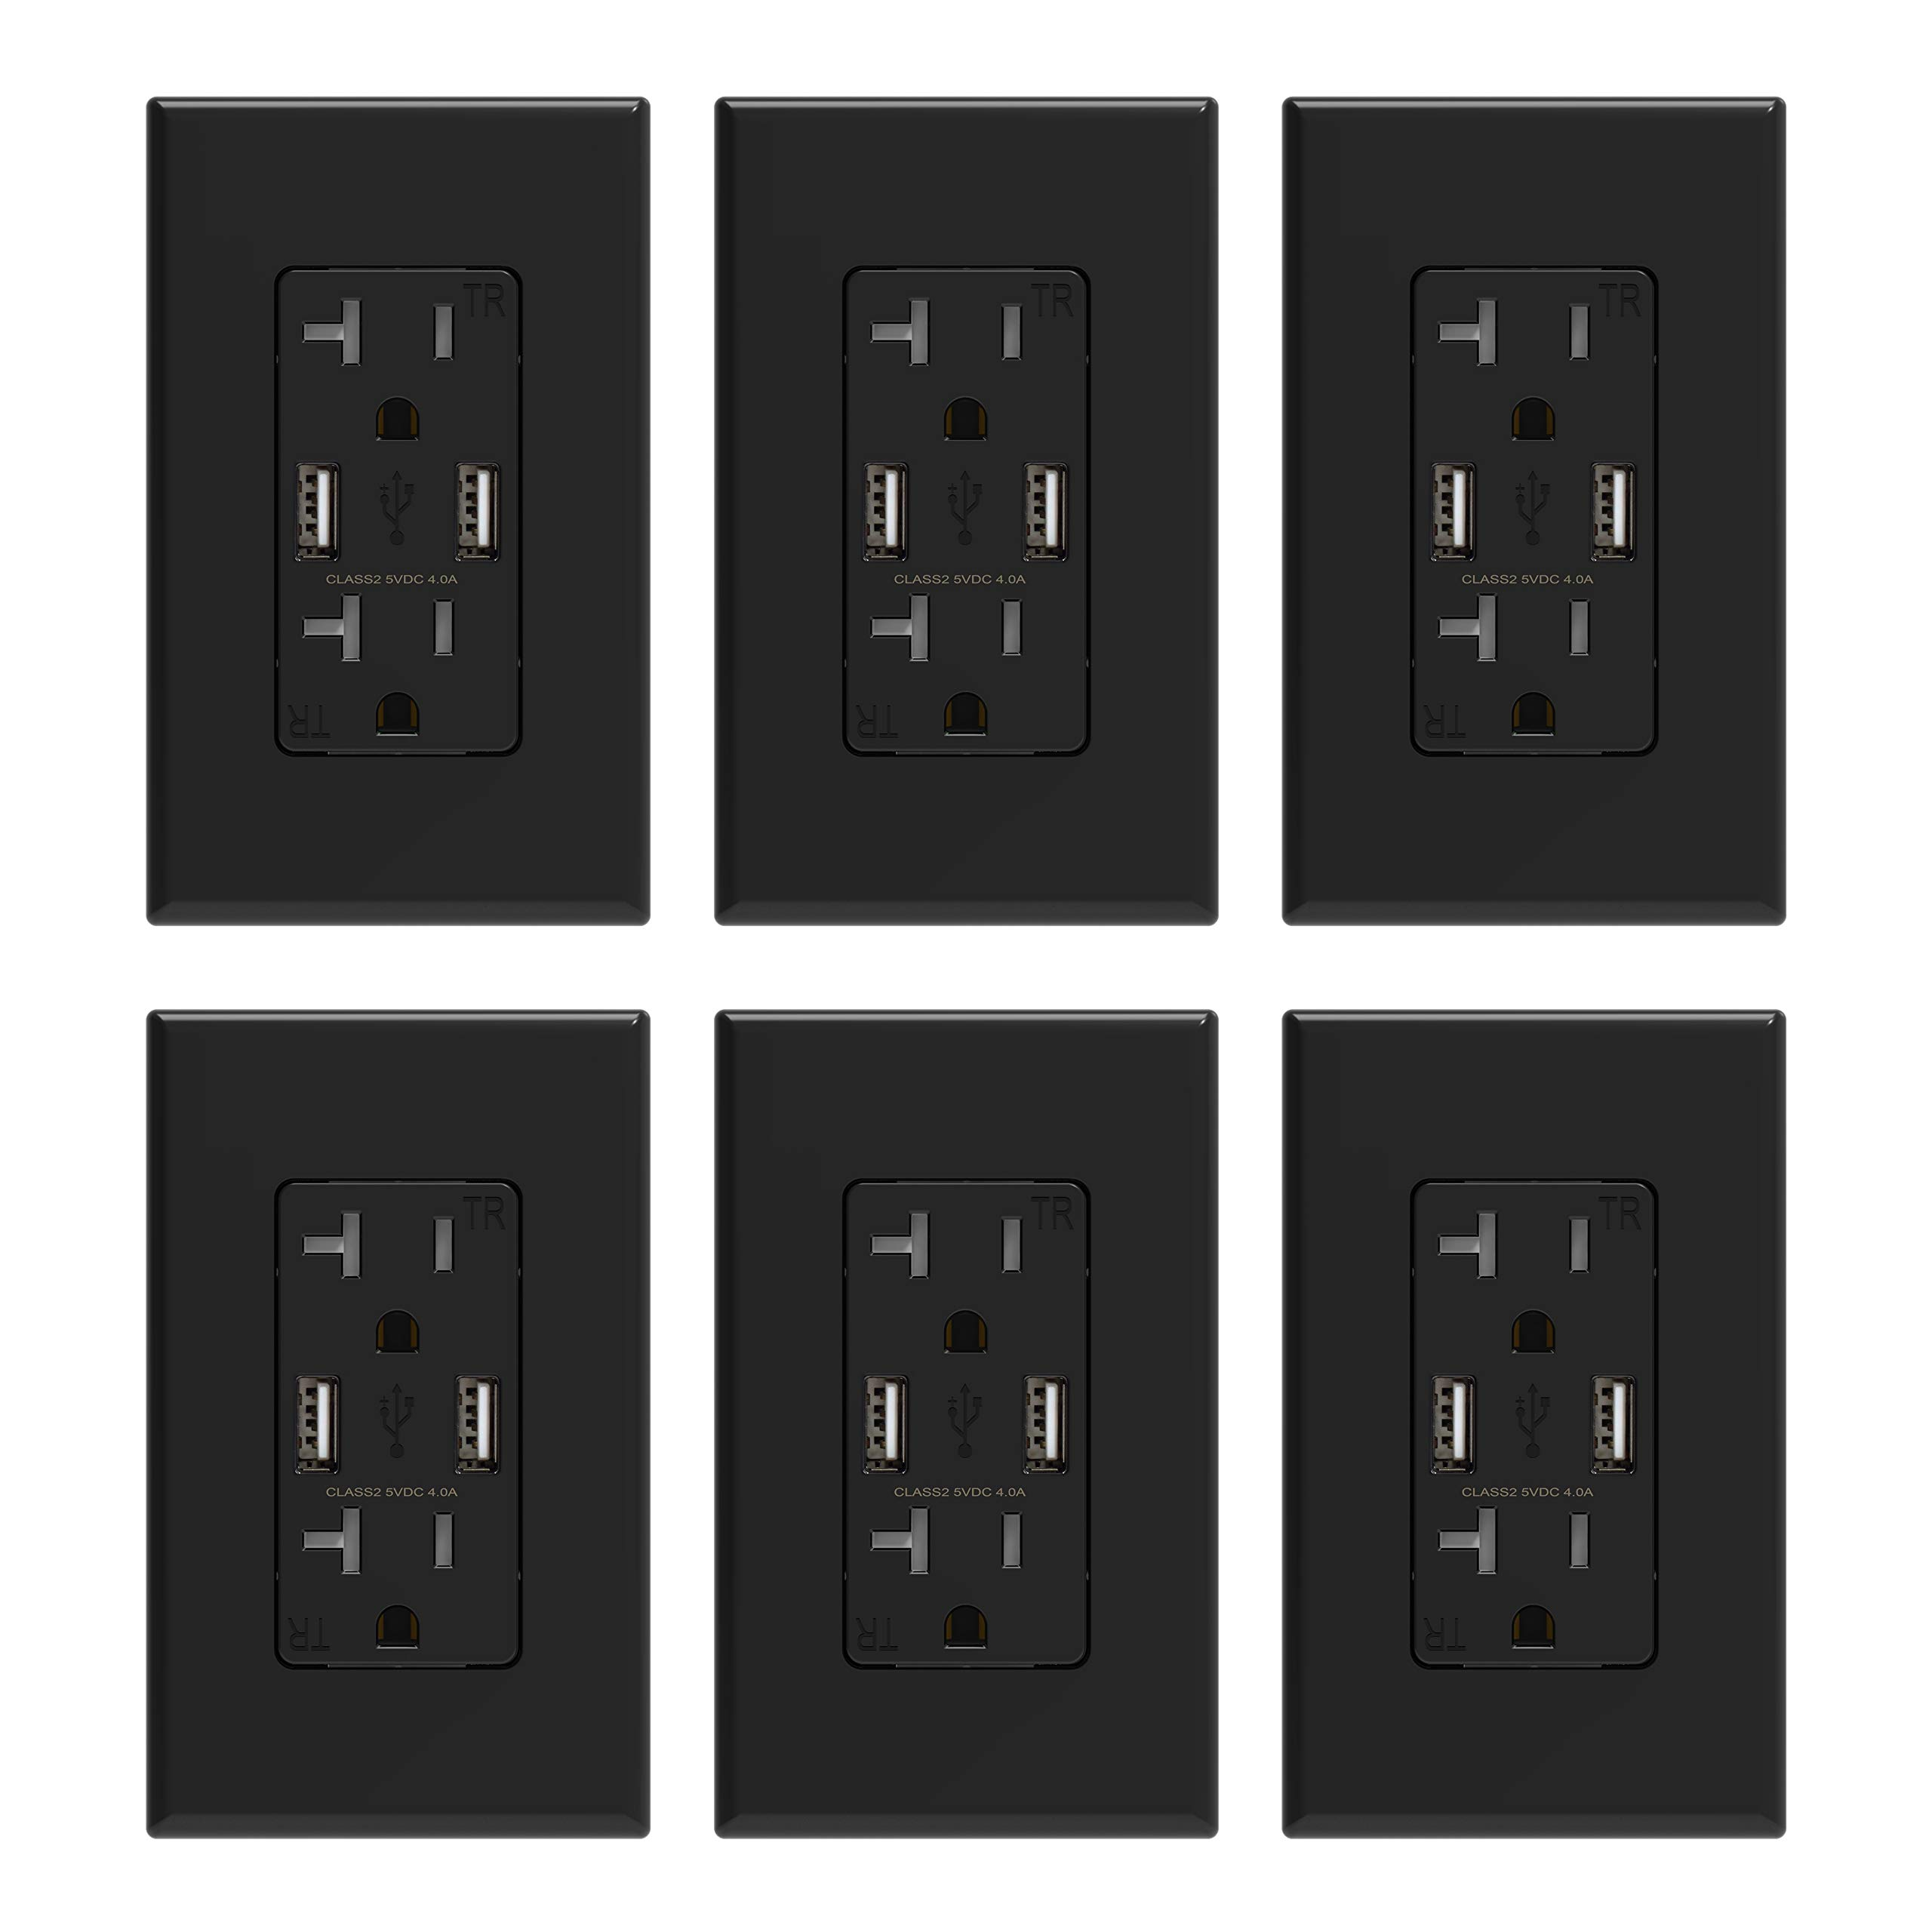 ELEGRP USB Charger Wall Outlet, Dual High Speed 4.0 Amp USB Ports with Smart Chip, 20 Amp Duplex Tamper Resistant Receptacle Plug NEMA 5-20R, Wall Plate Included, UL Listed (6 Pack, Black) by ELEGRP